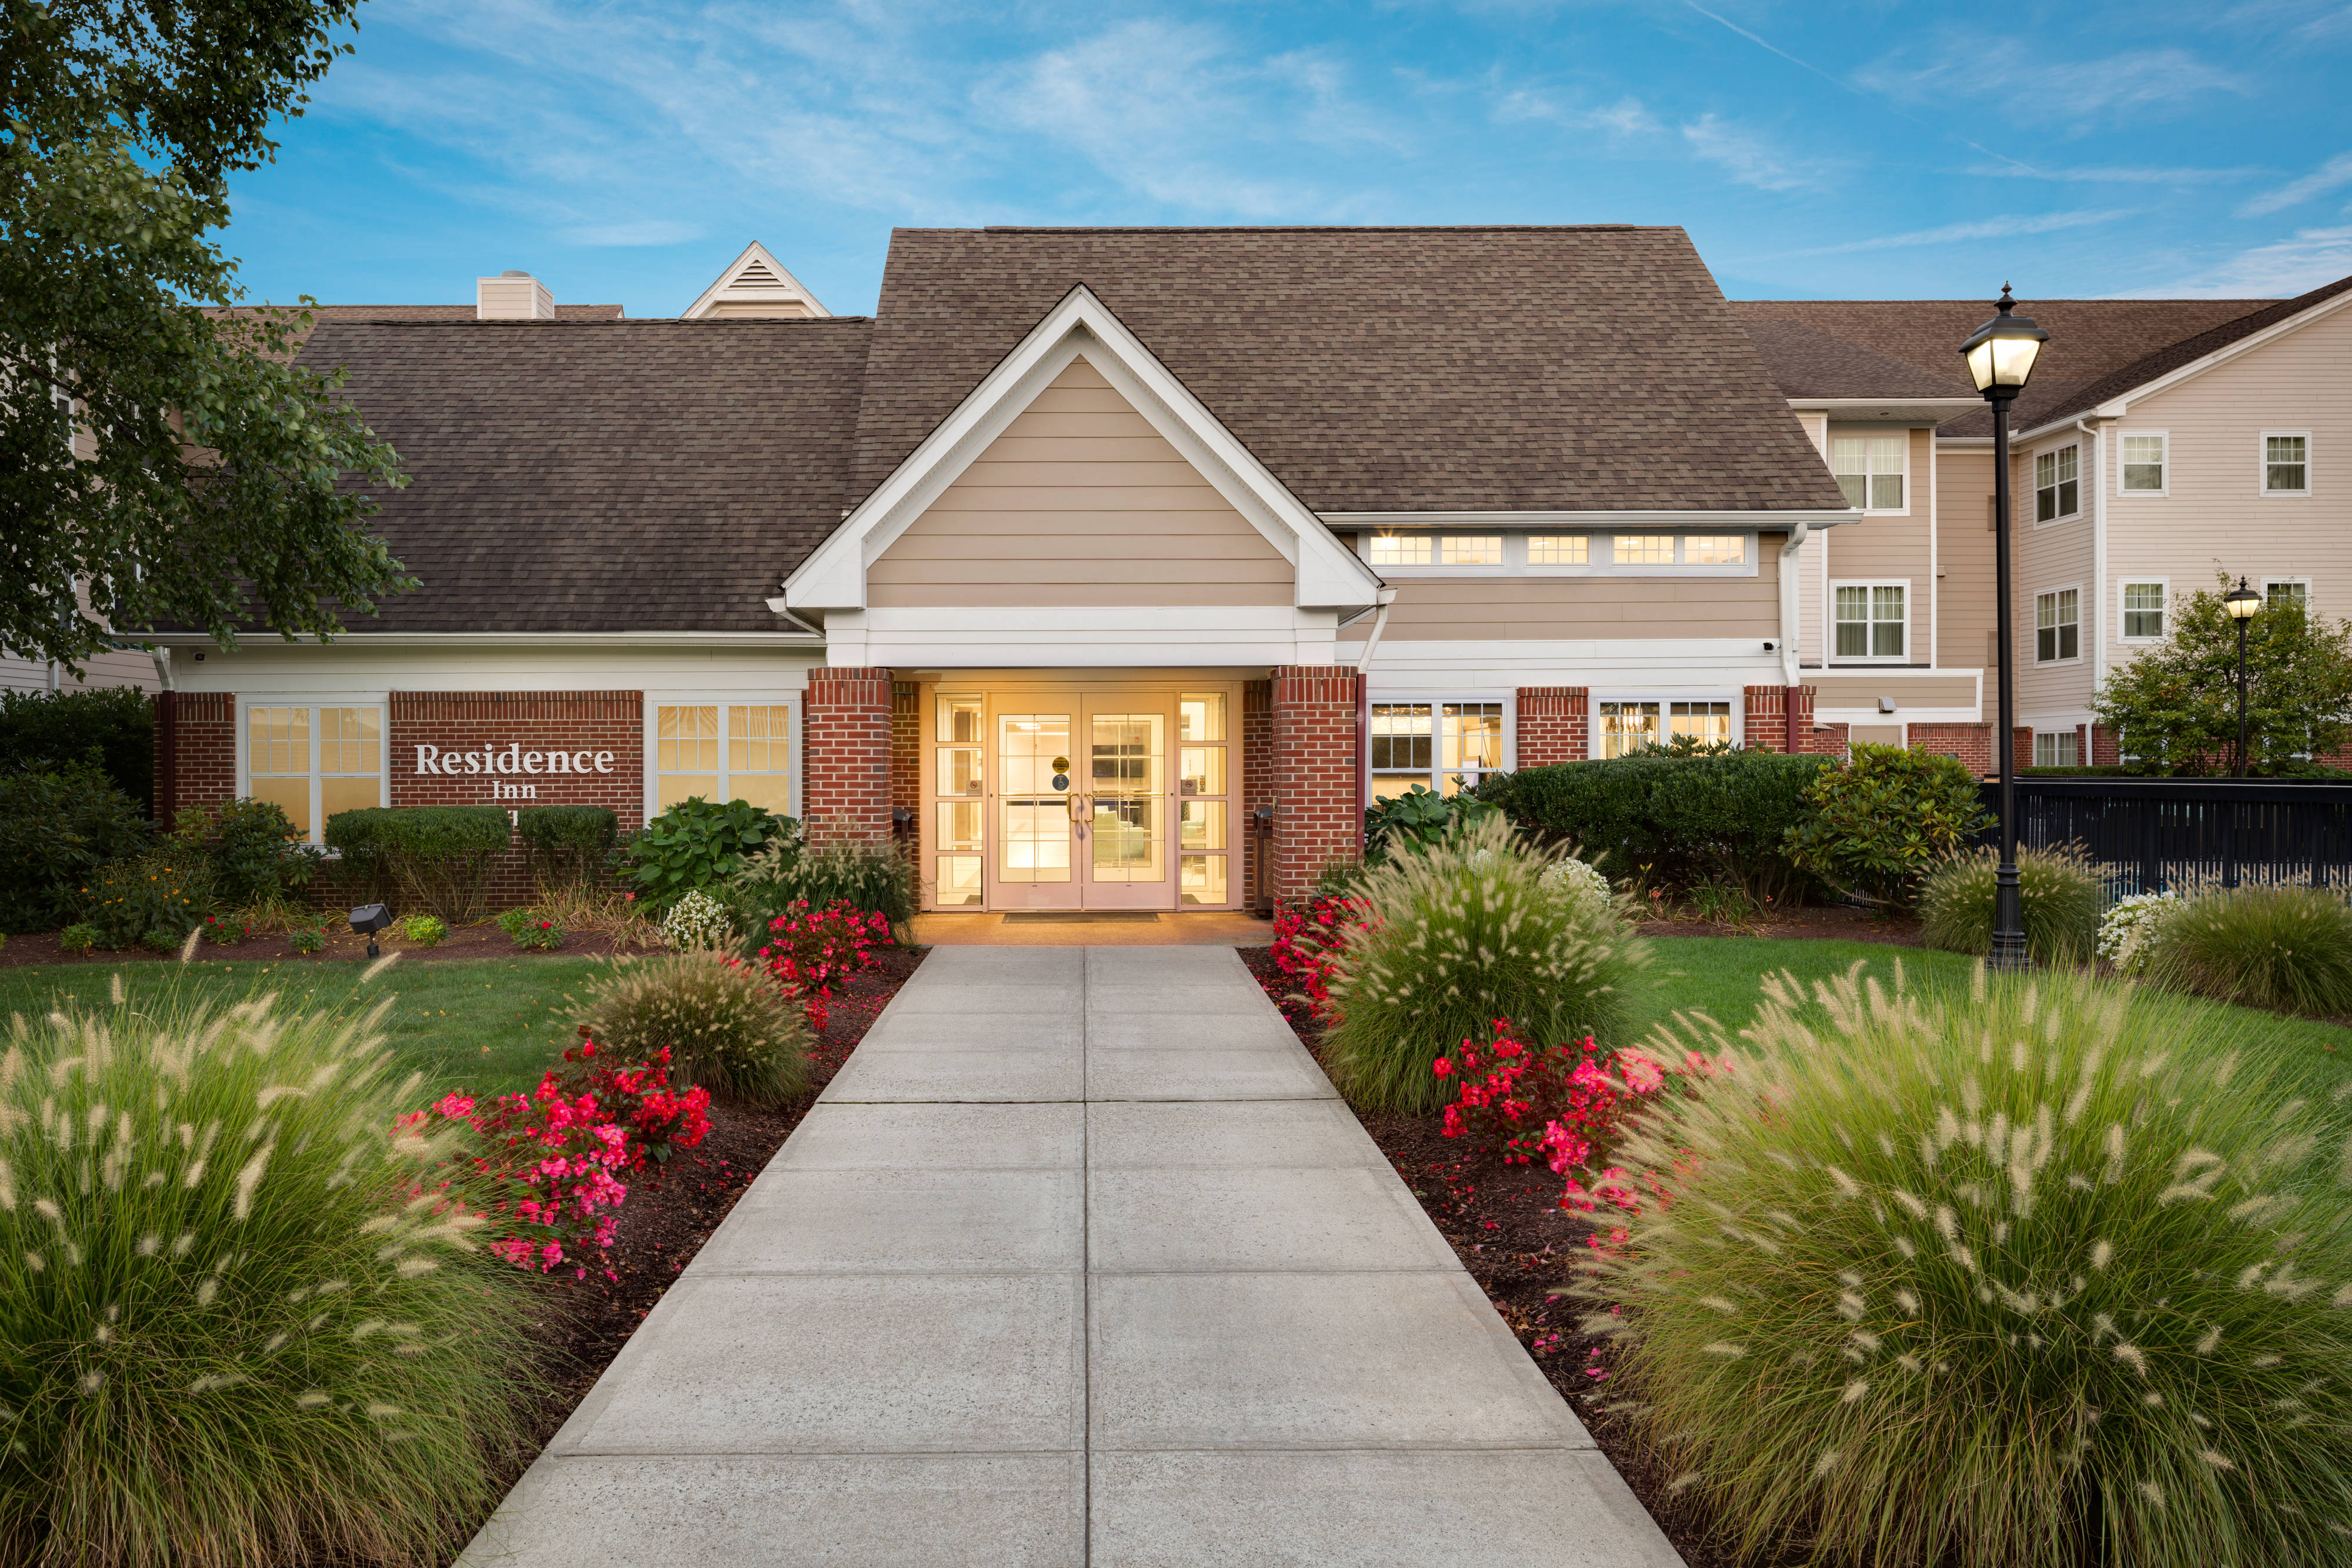 Residence Inn Milford Marriott